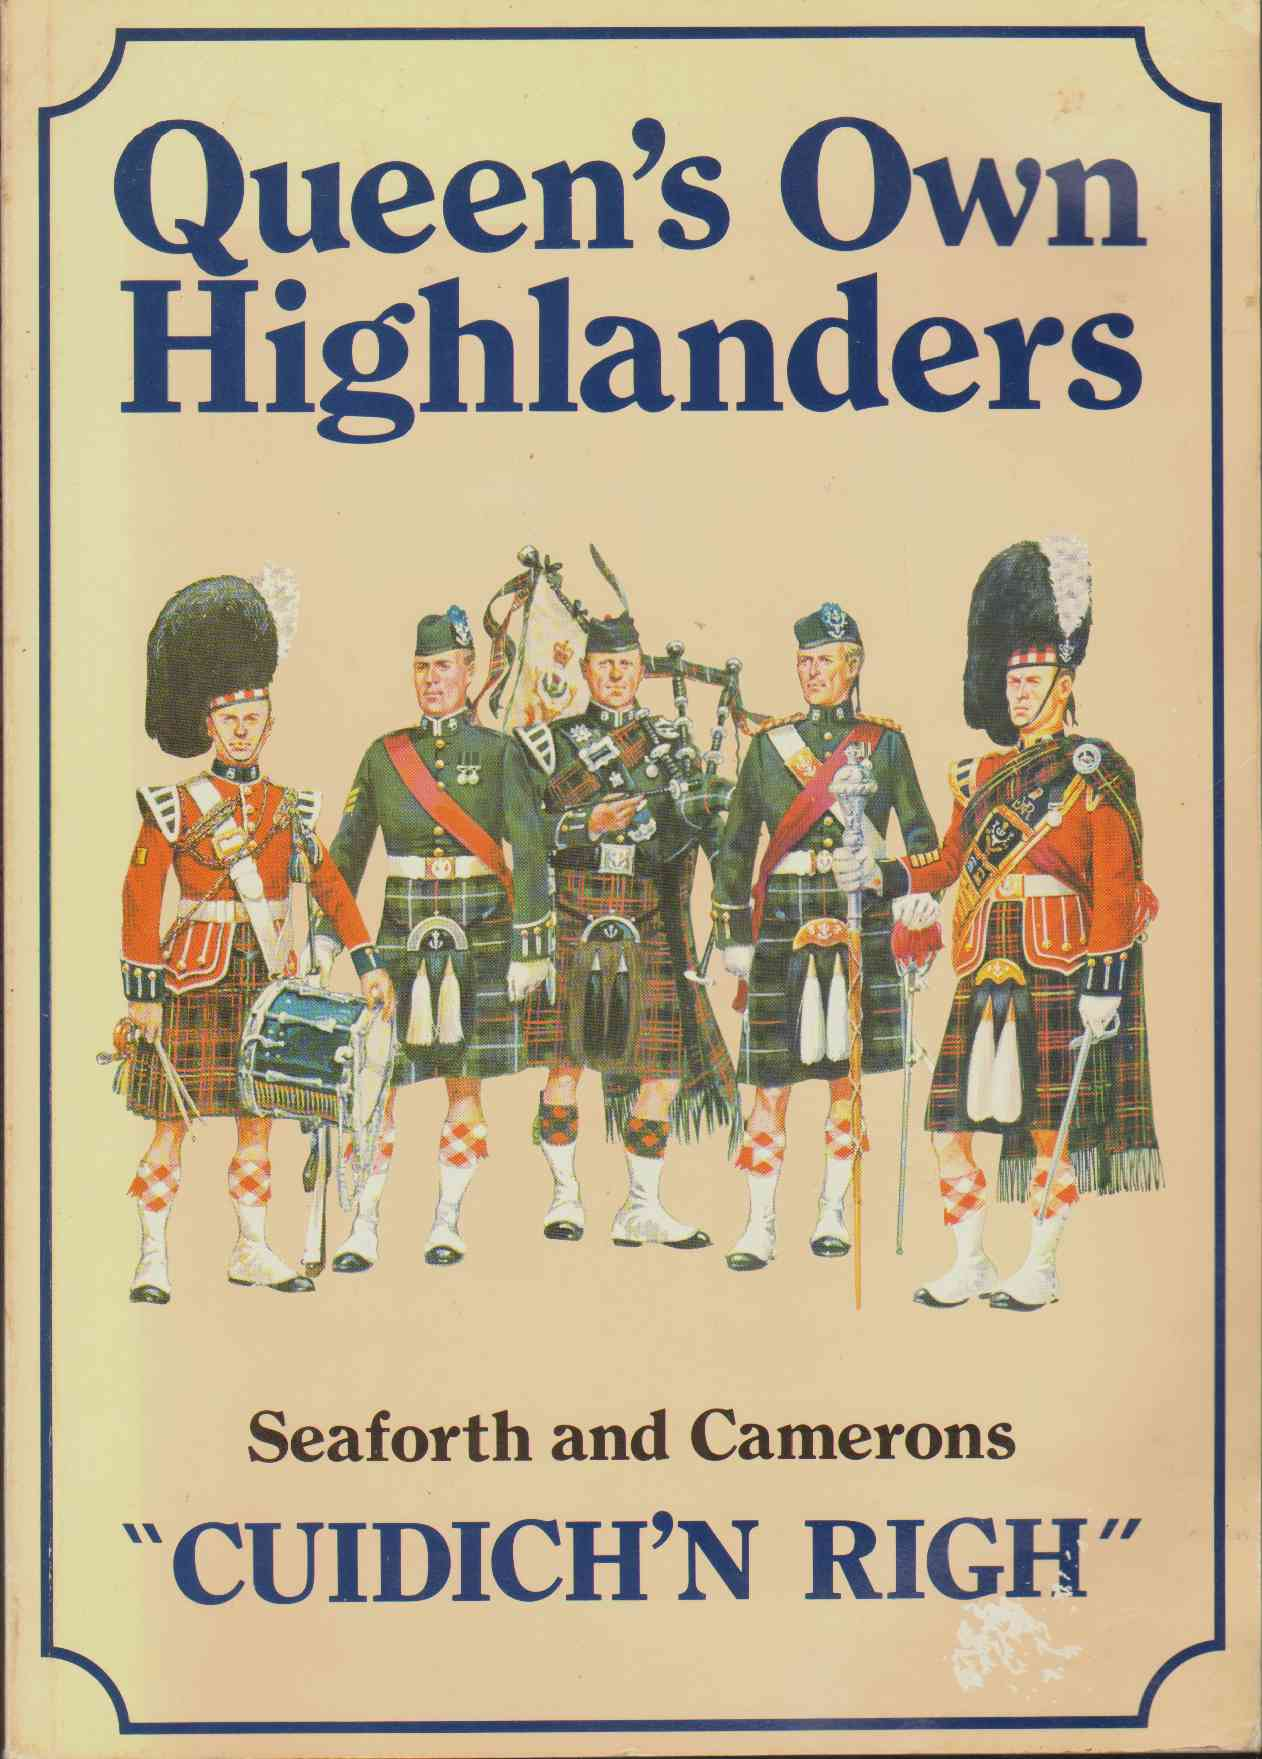 Image for CUIDICH N RIGH Queens Own Highlanders, Seaforth and Camerons